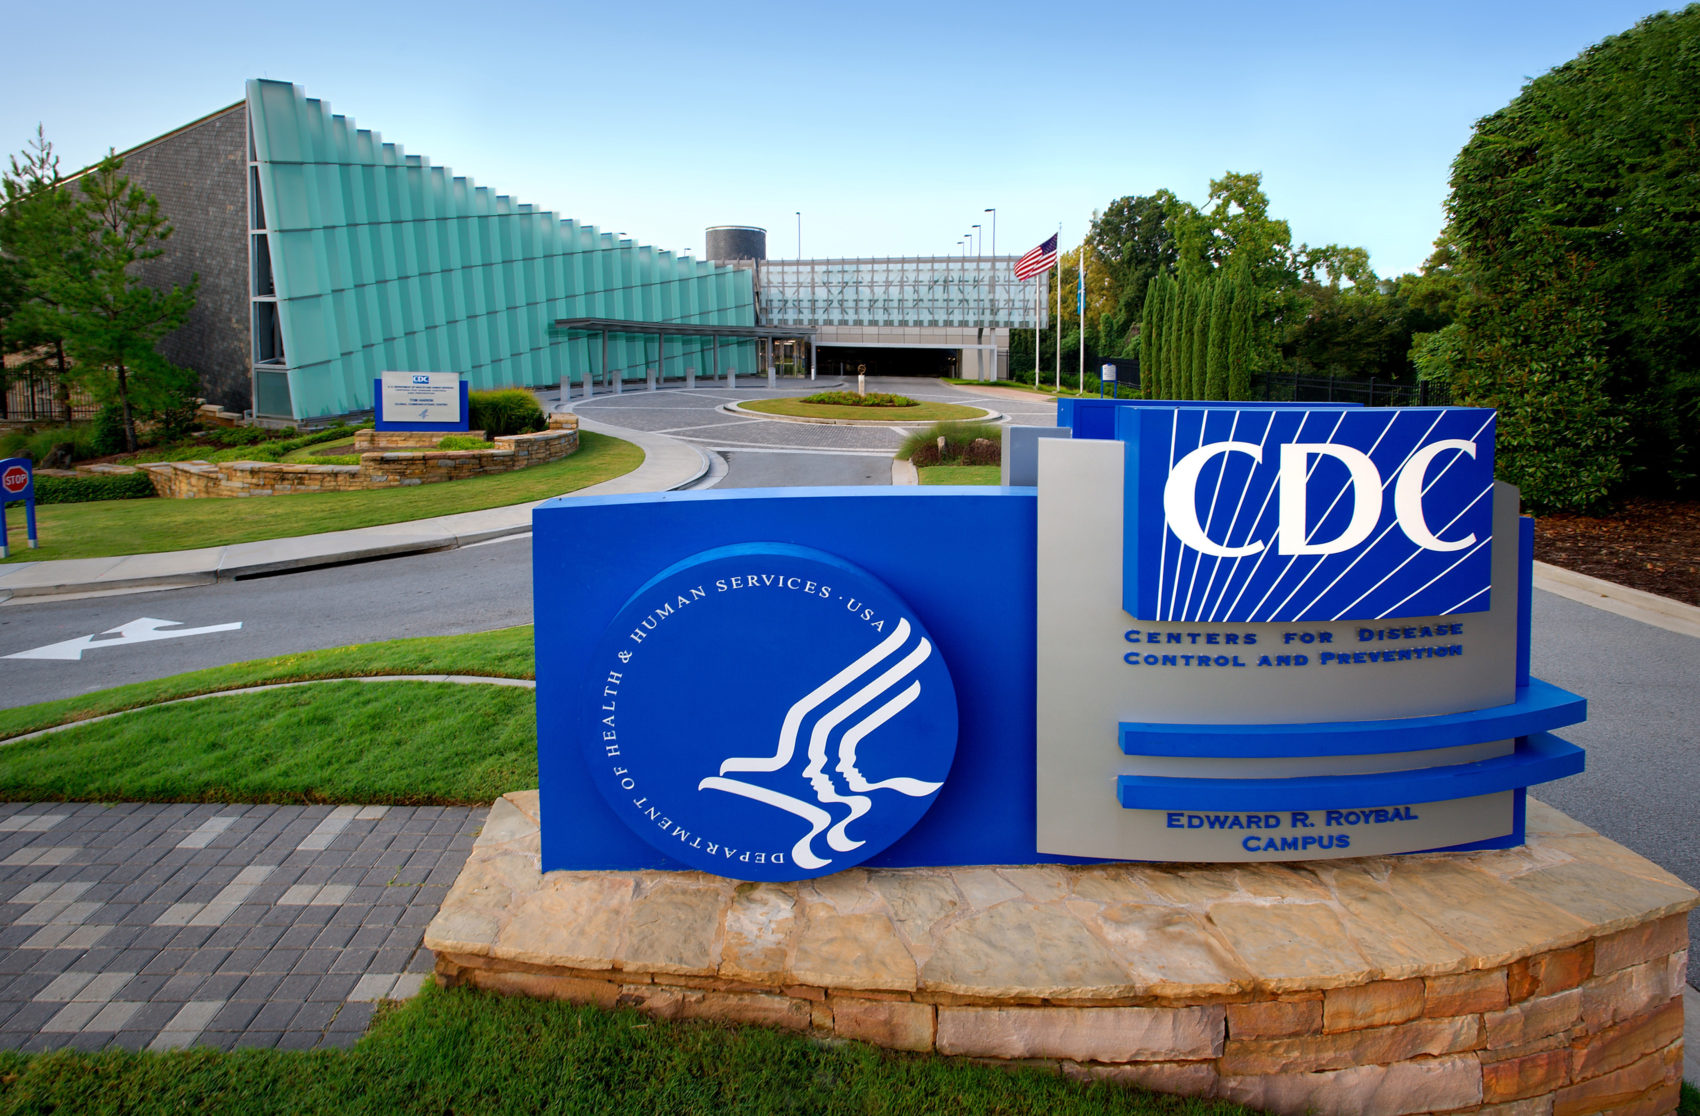 Public Health Expert: If CDC Director Can't Lead Agency Amid COVID, He Should 'Step Aside'